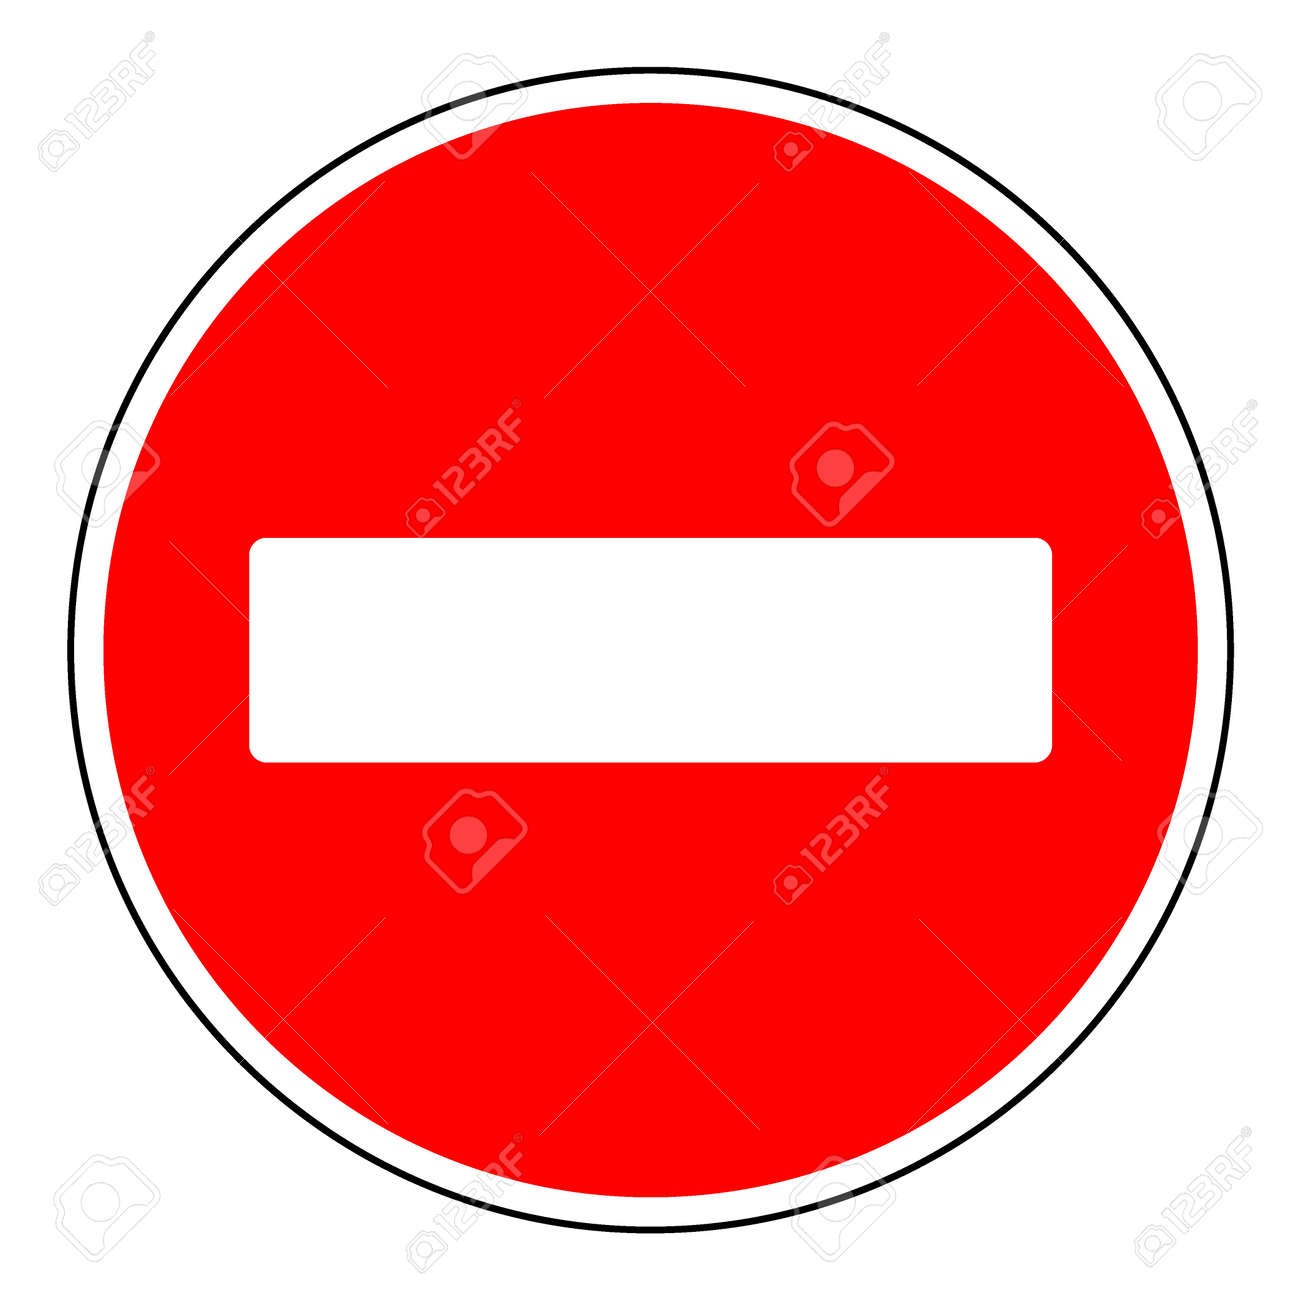 Do not enter blank sign warning red circle icon isolated on warning red circle icon isolated on white background prohibition buycottarizona Image collections